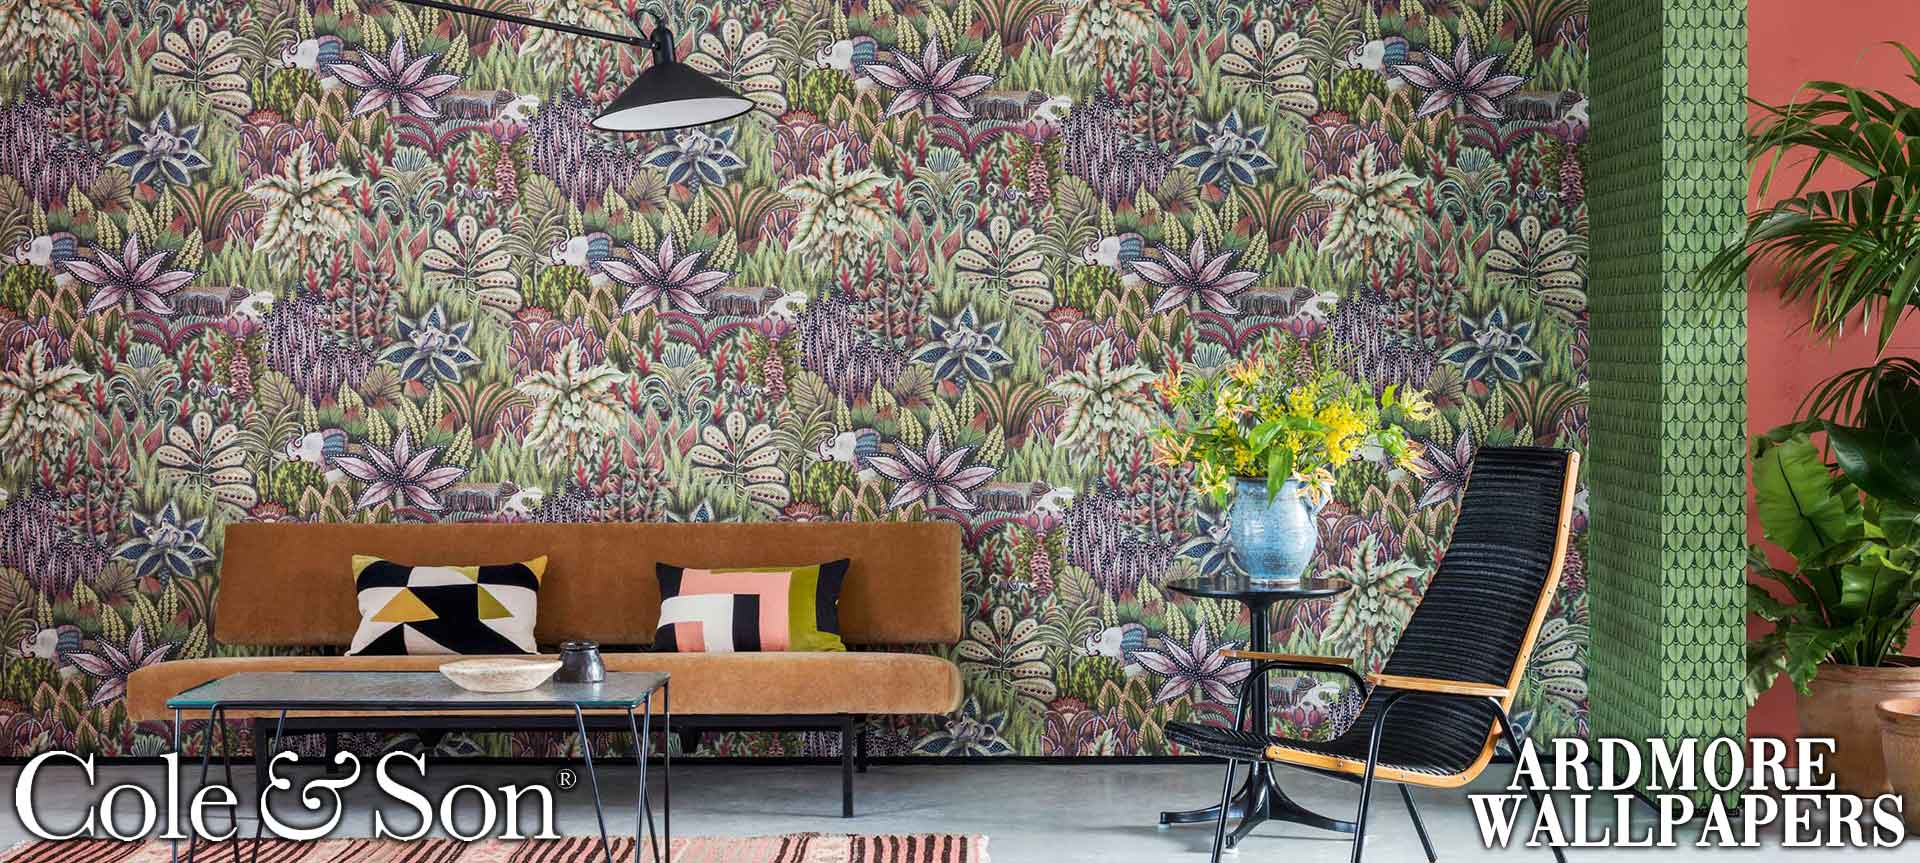 cole-and-son-ardmore-wallpapers